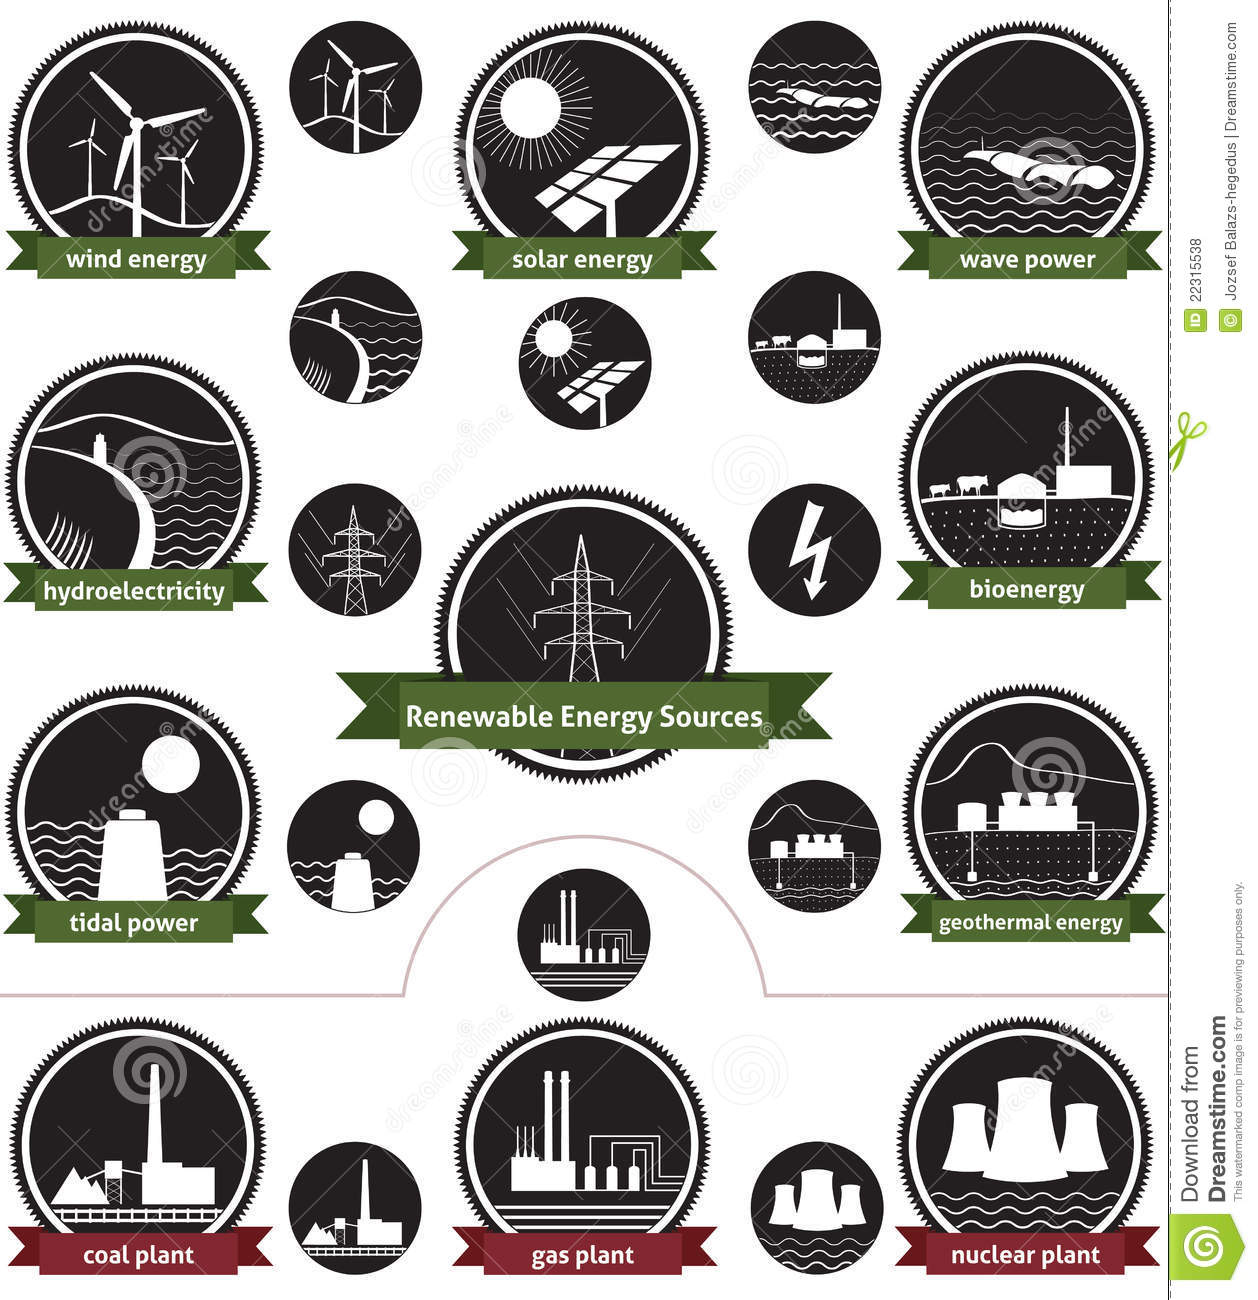 ... energy generation and the three main non-renewable energy sources